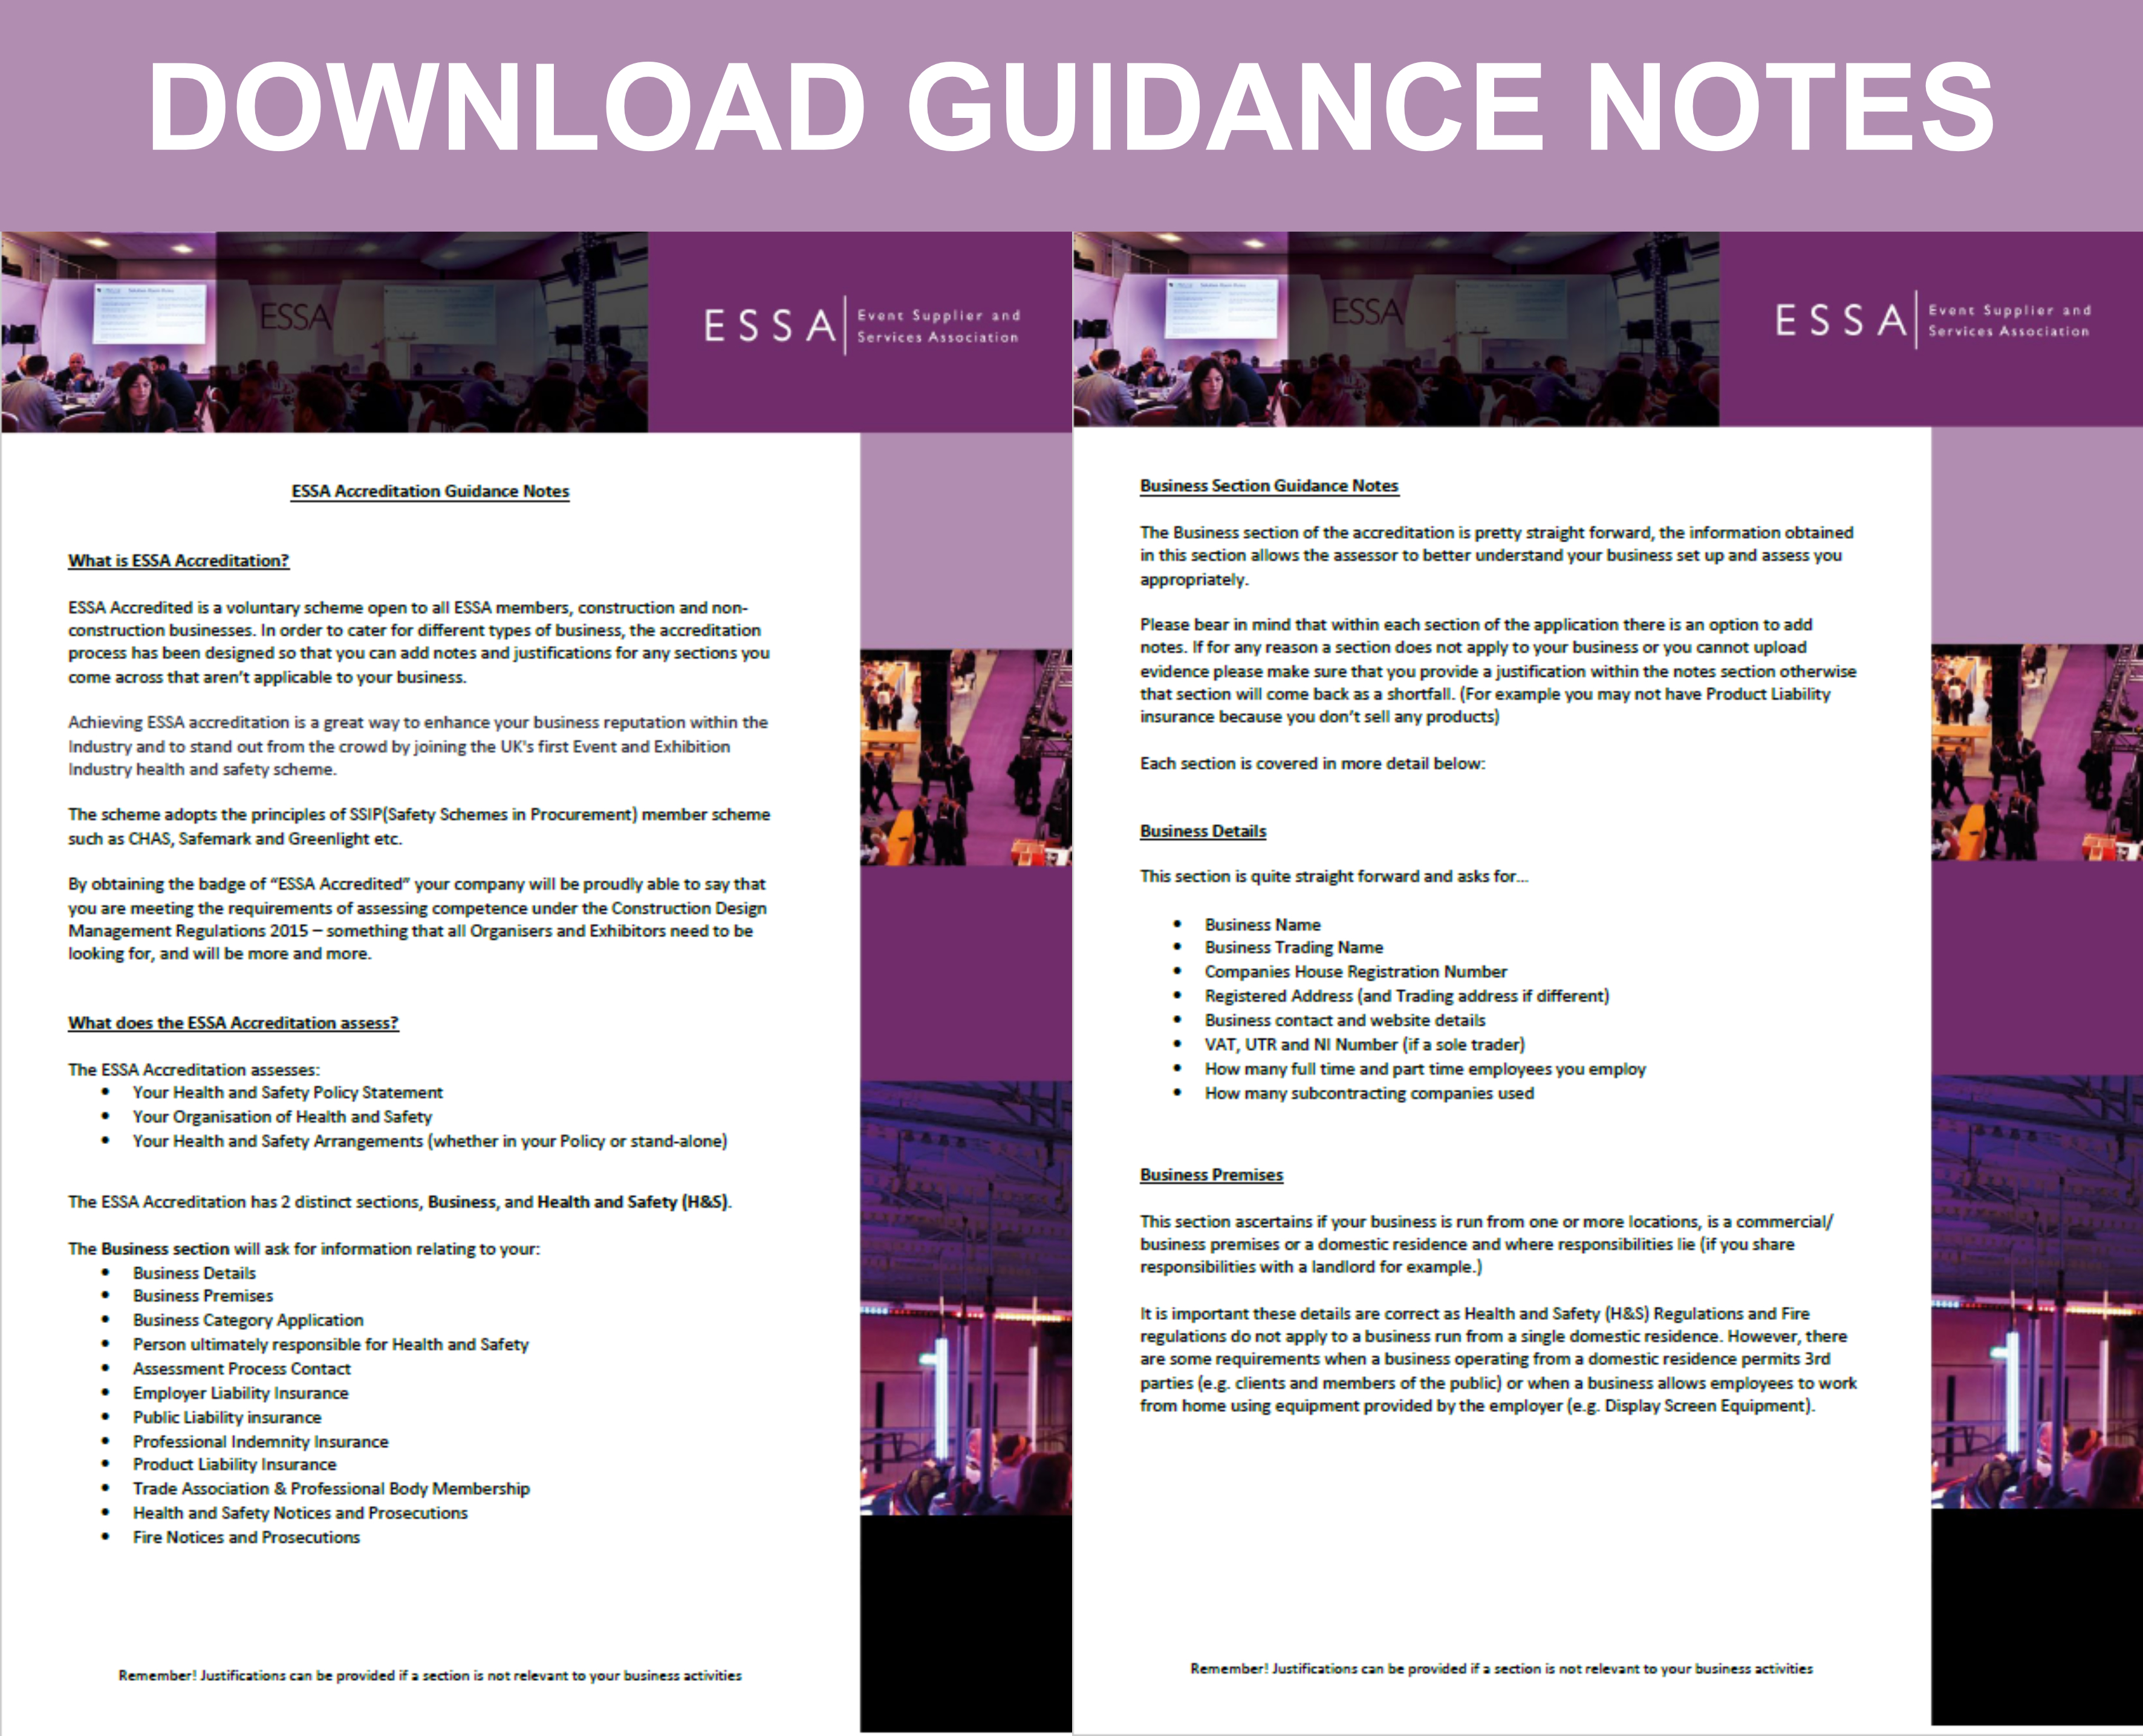 Guidance Notes Image